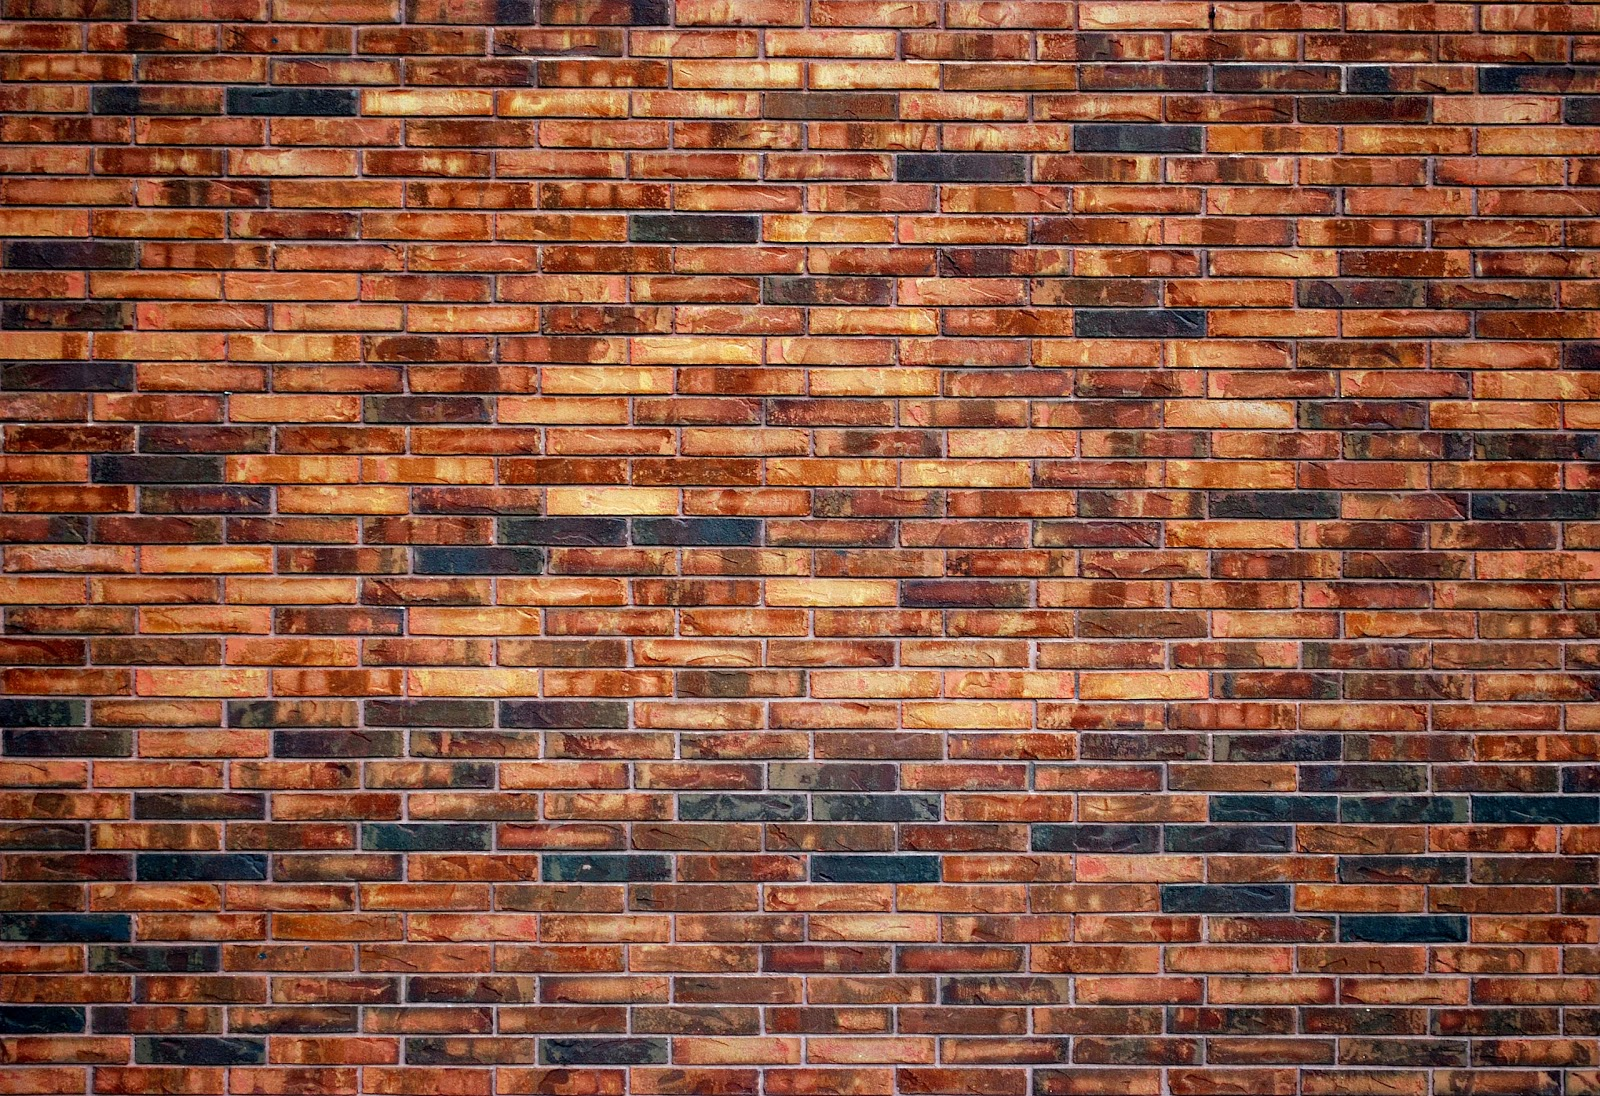 Brick Texture Wallpaper3